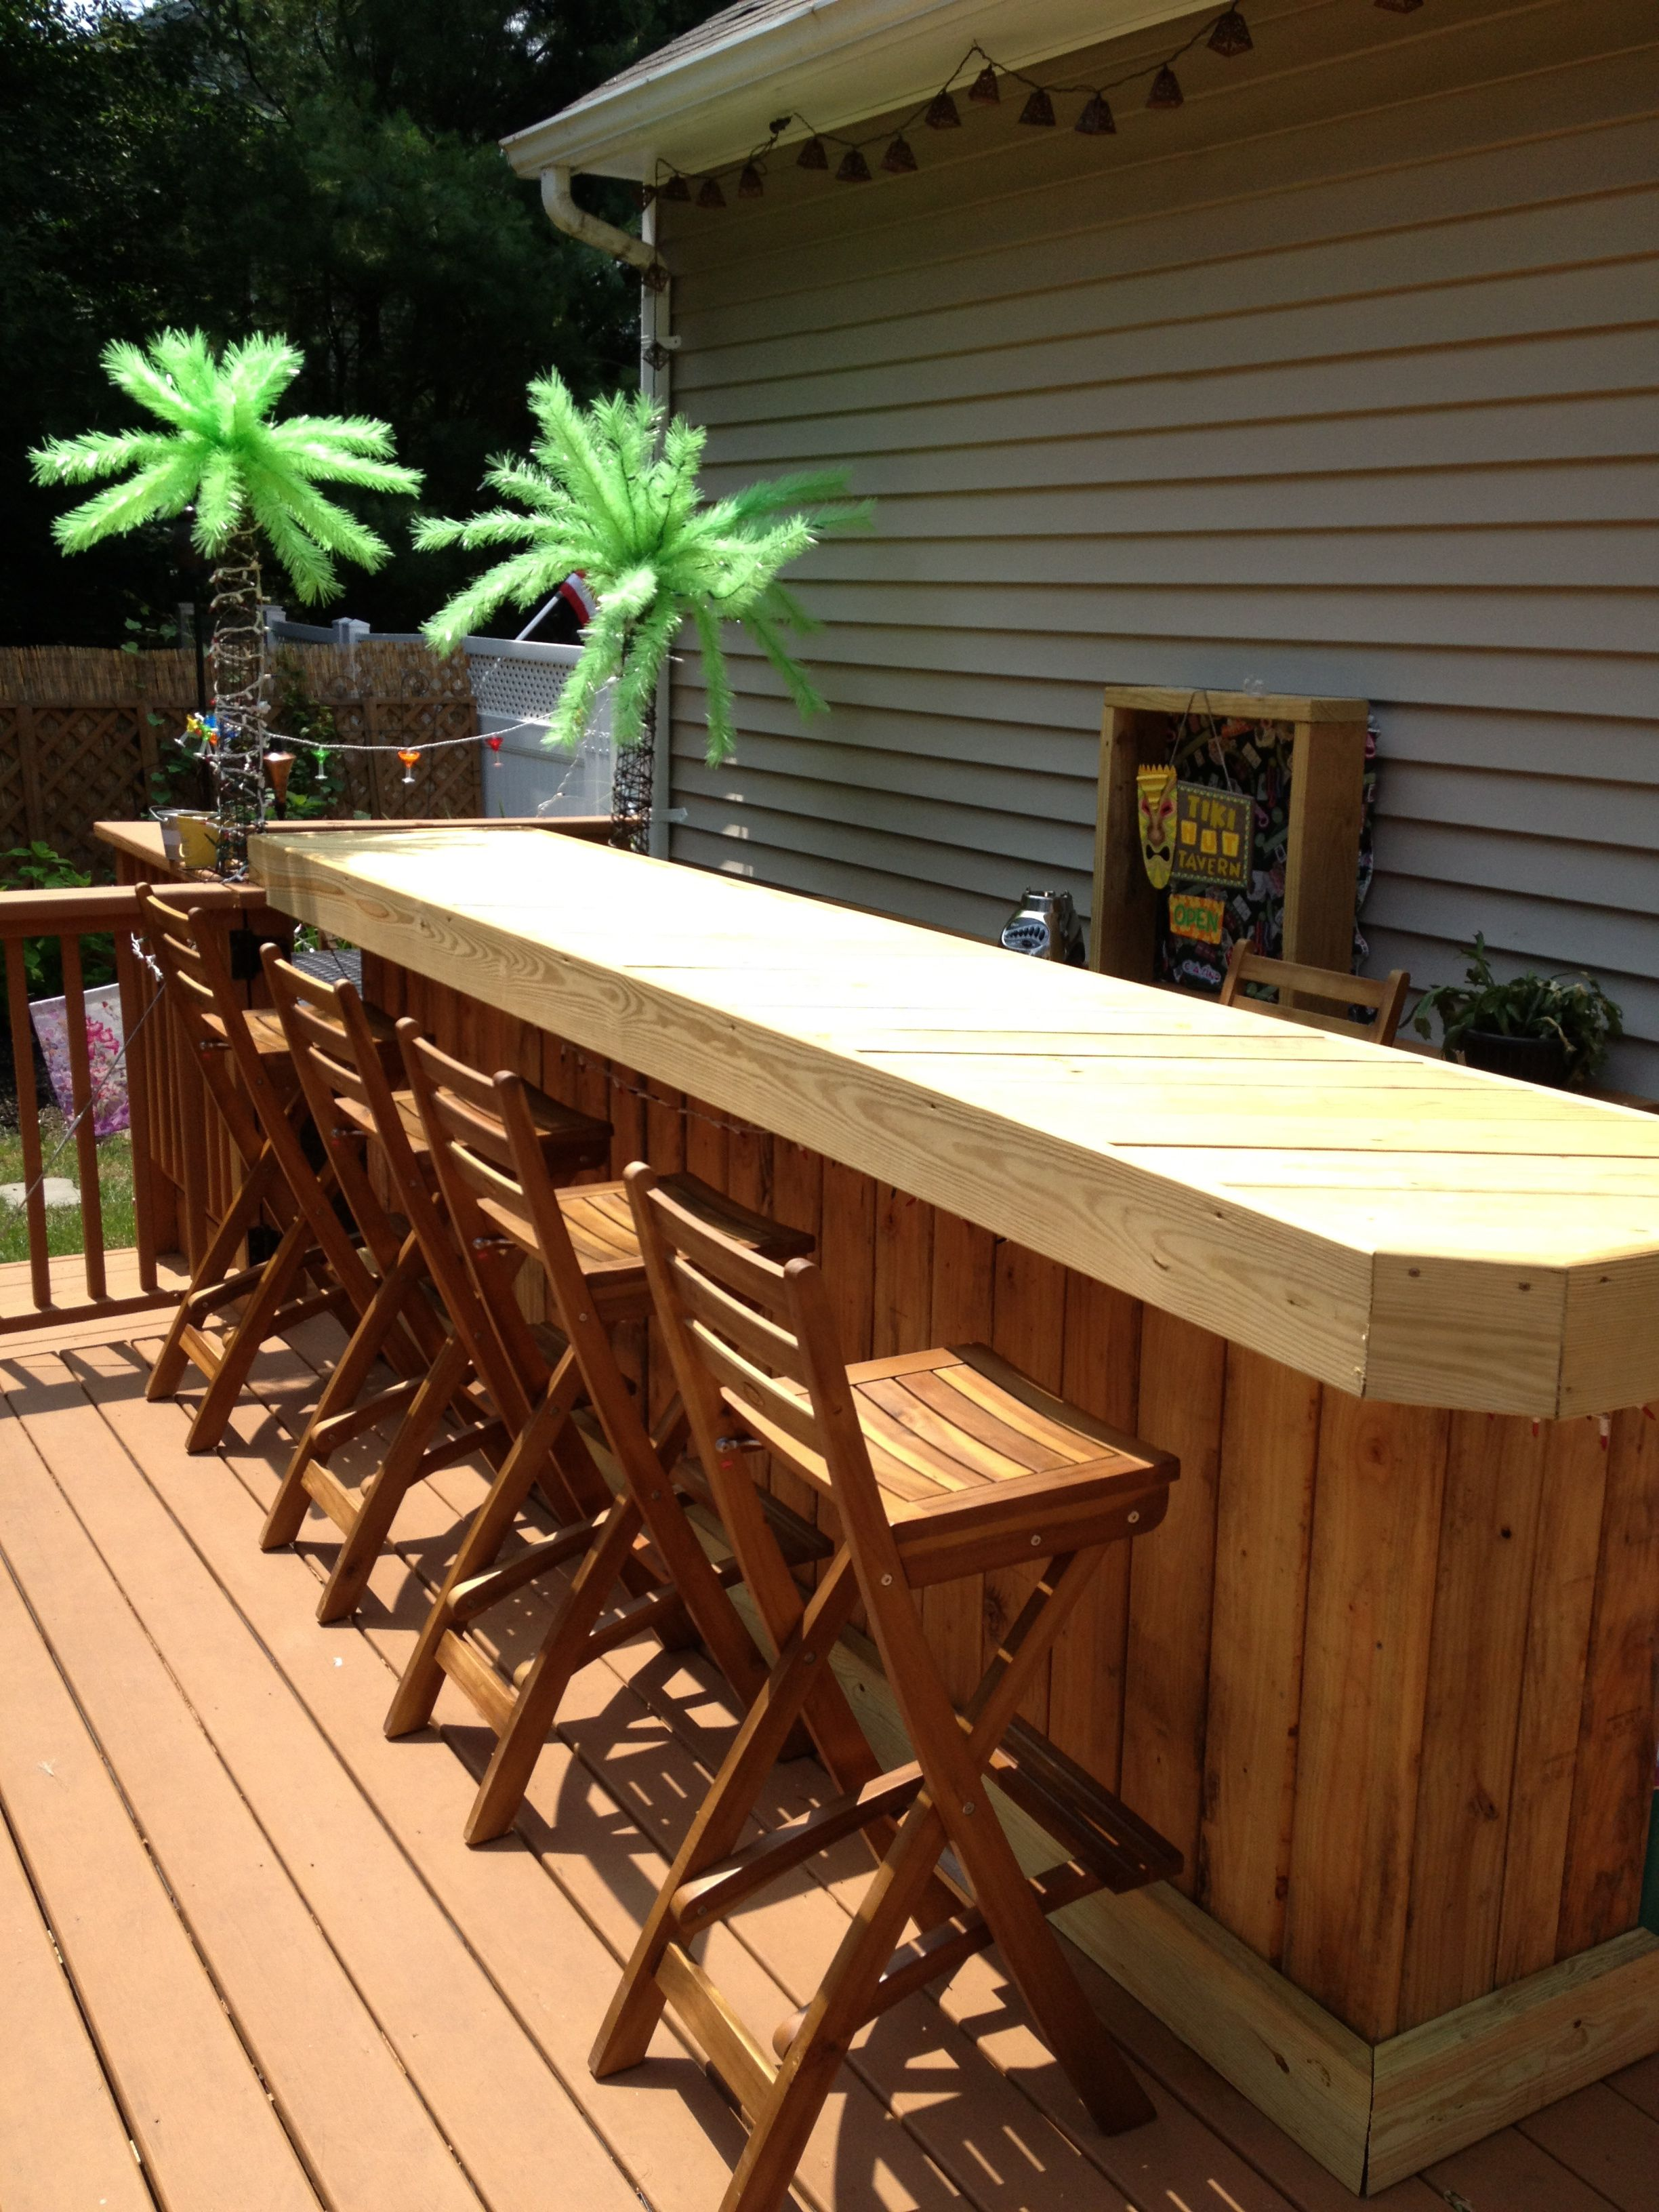 My Deck Bar Built By My Brothers And I In Just A Couple Of Days.